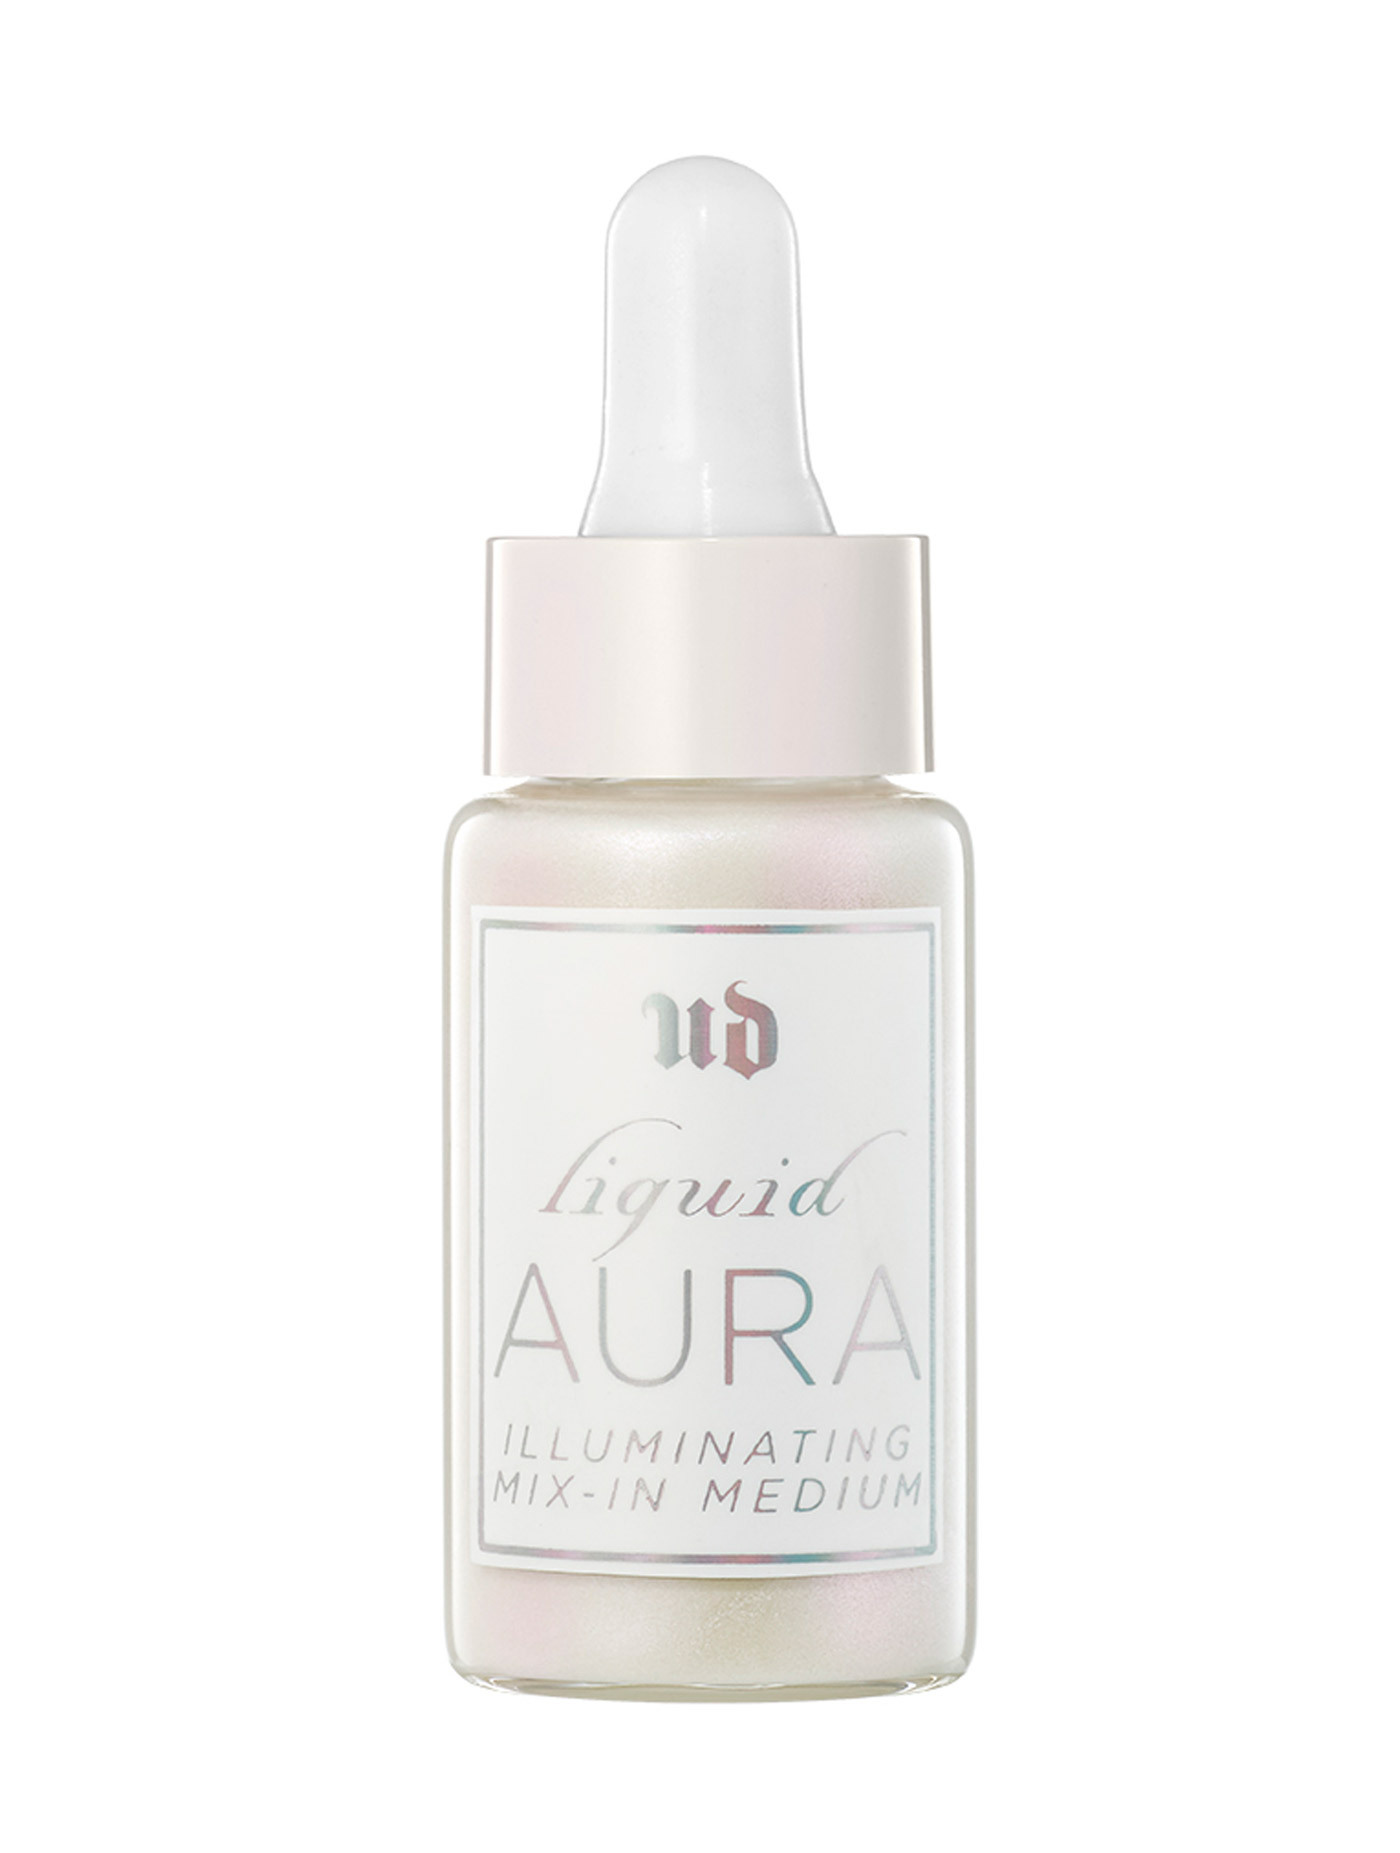 URBAN DECAY Liquid Aura Illuminating Mix-In 送料無料 追跡有